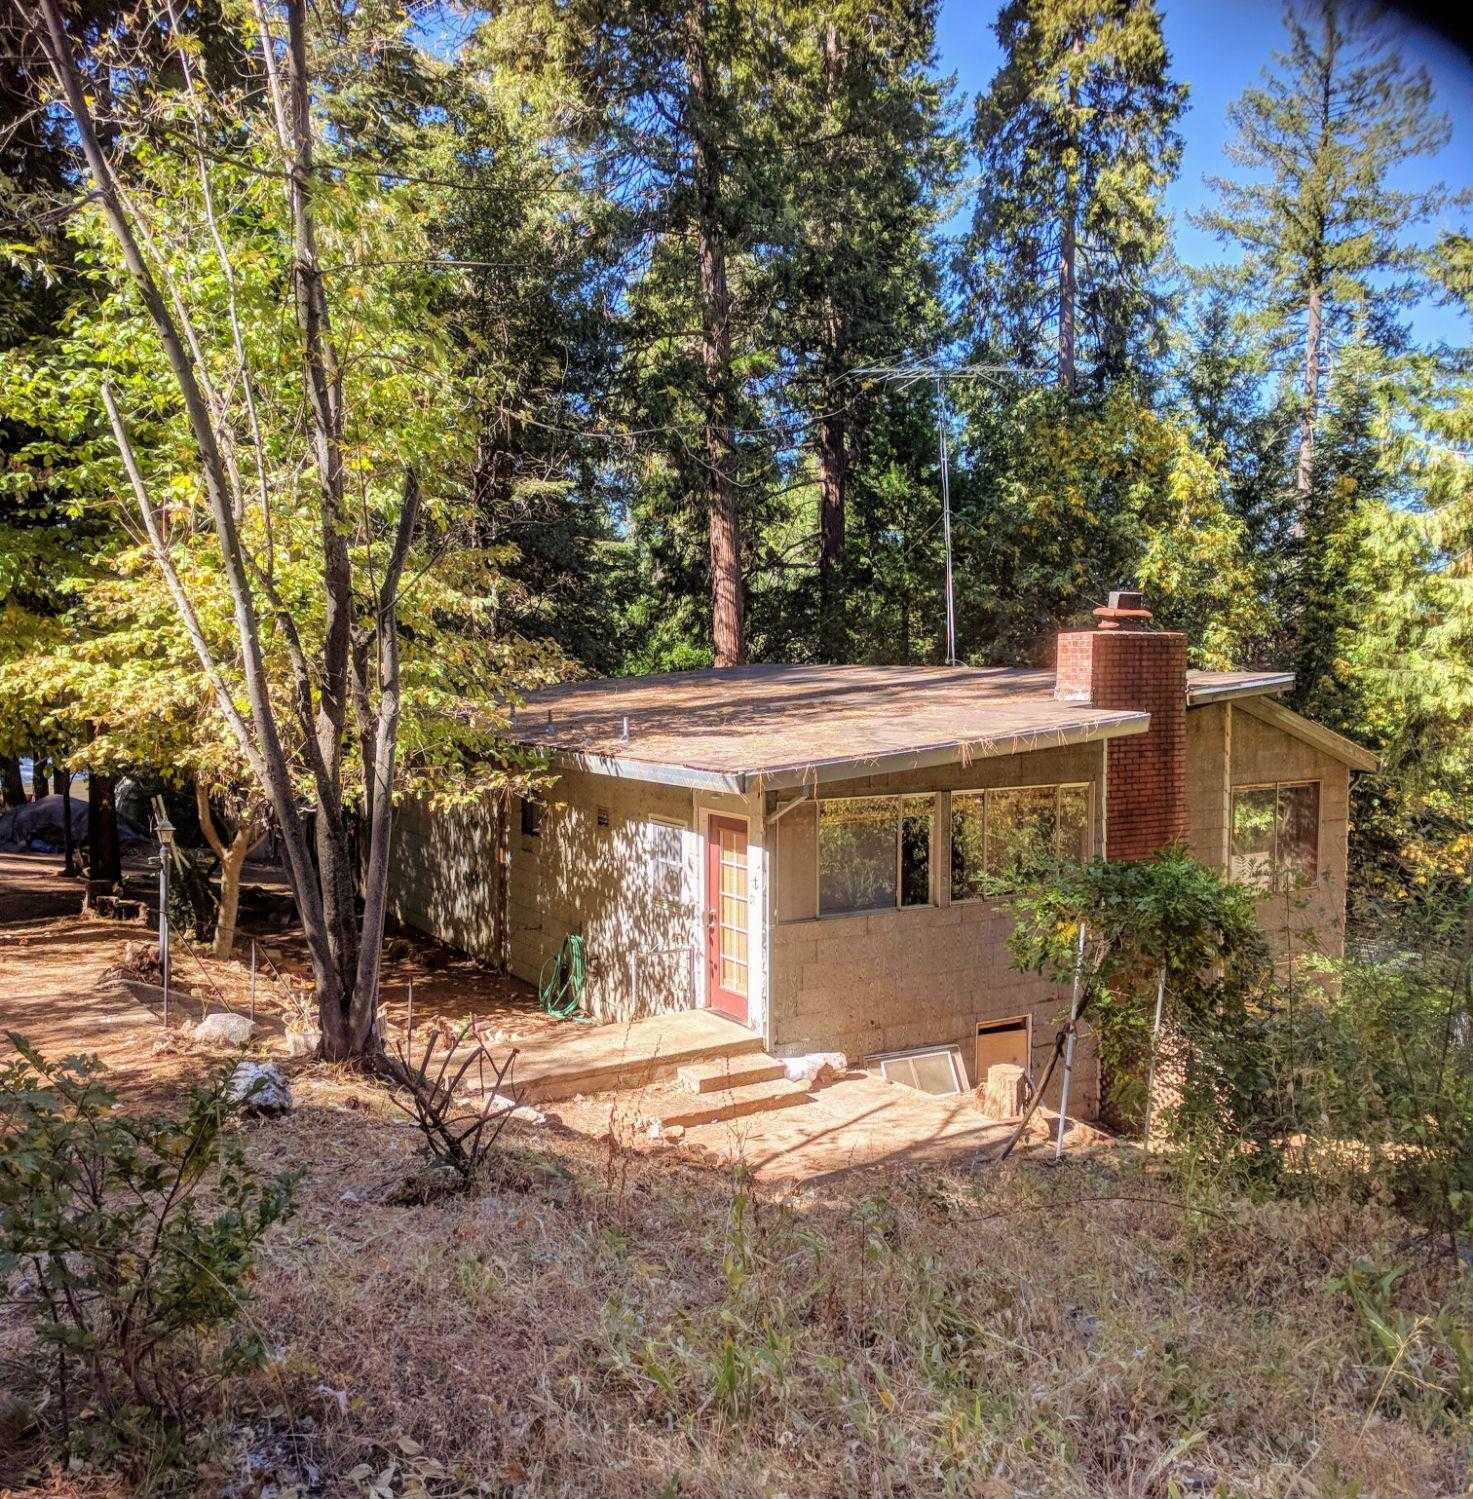 $238,499 - 2Br/2Ba -  for Sale in Pollock Pines